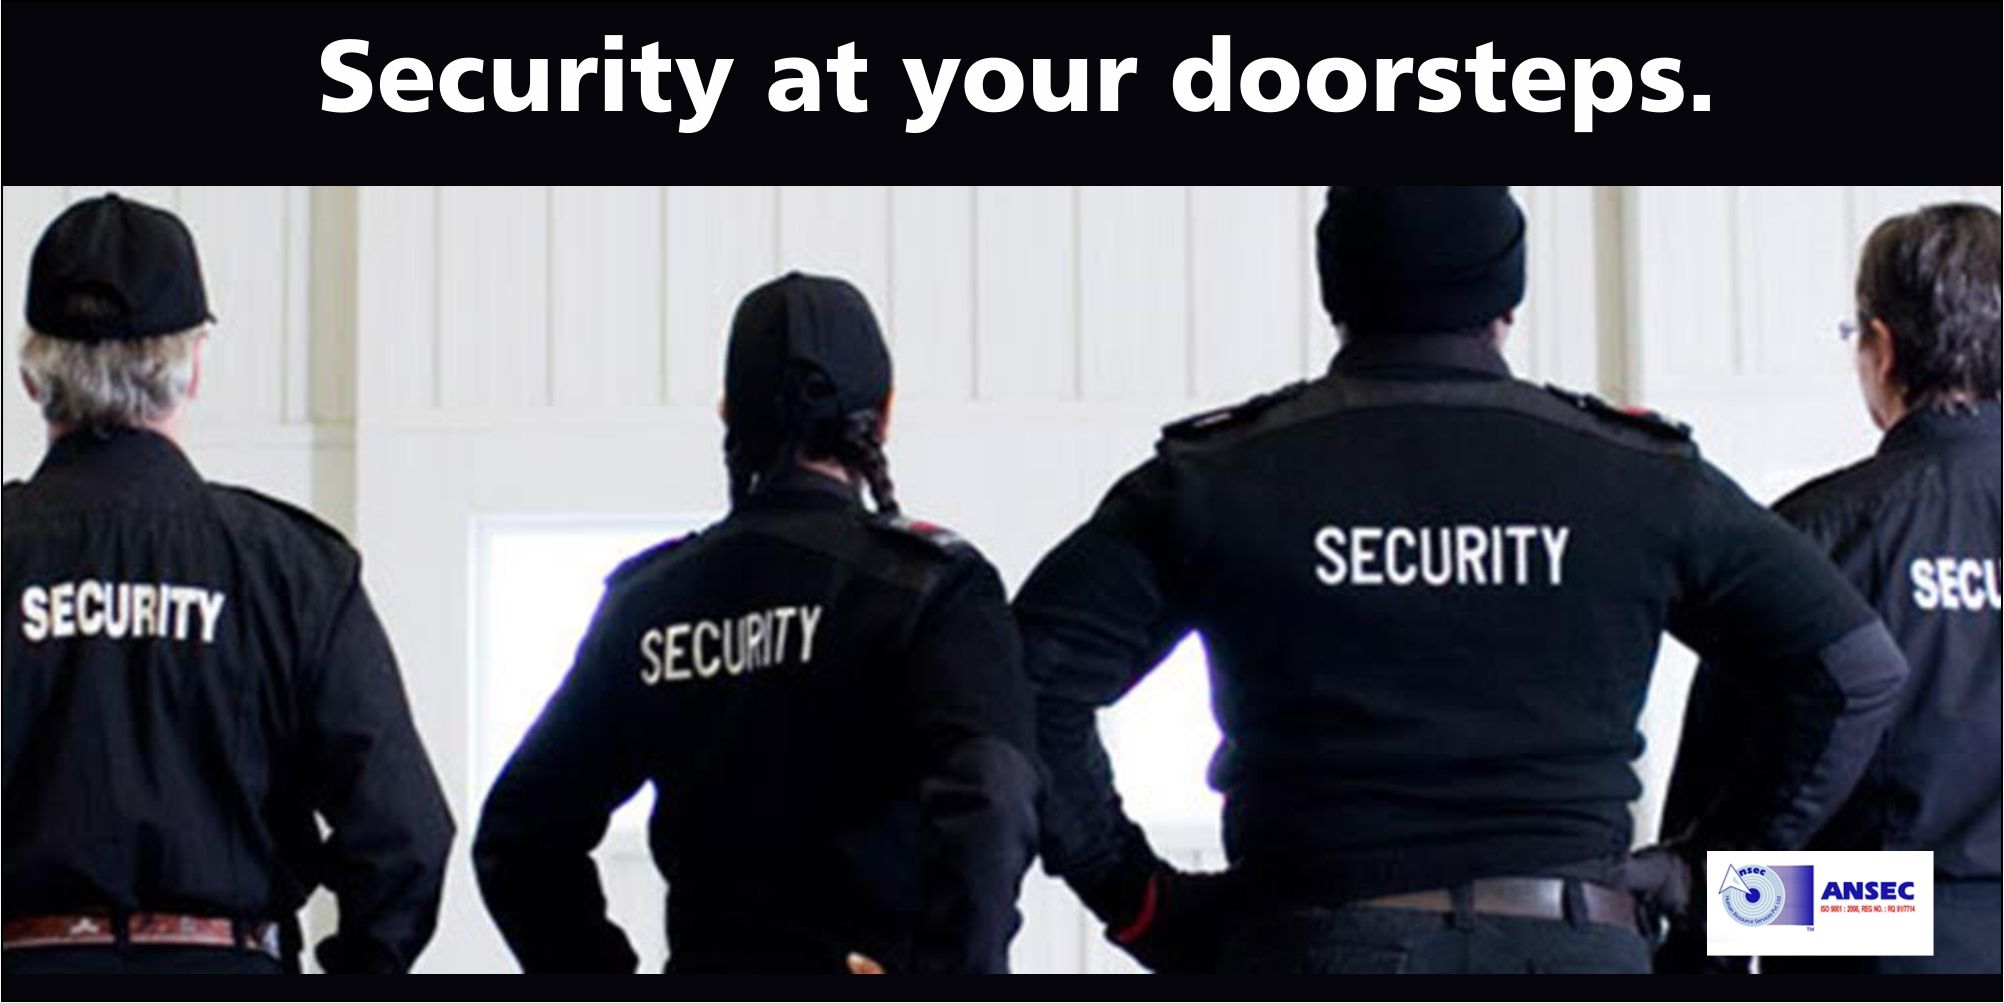 Gift your loved ones a sense of security AnsercHR